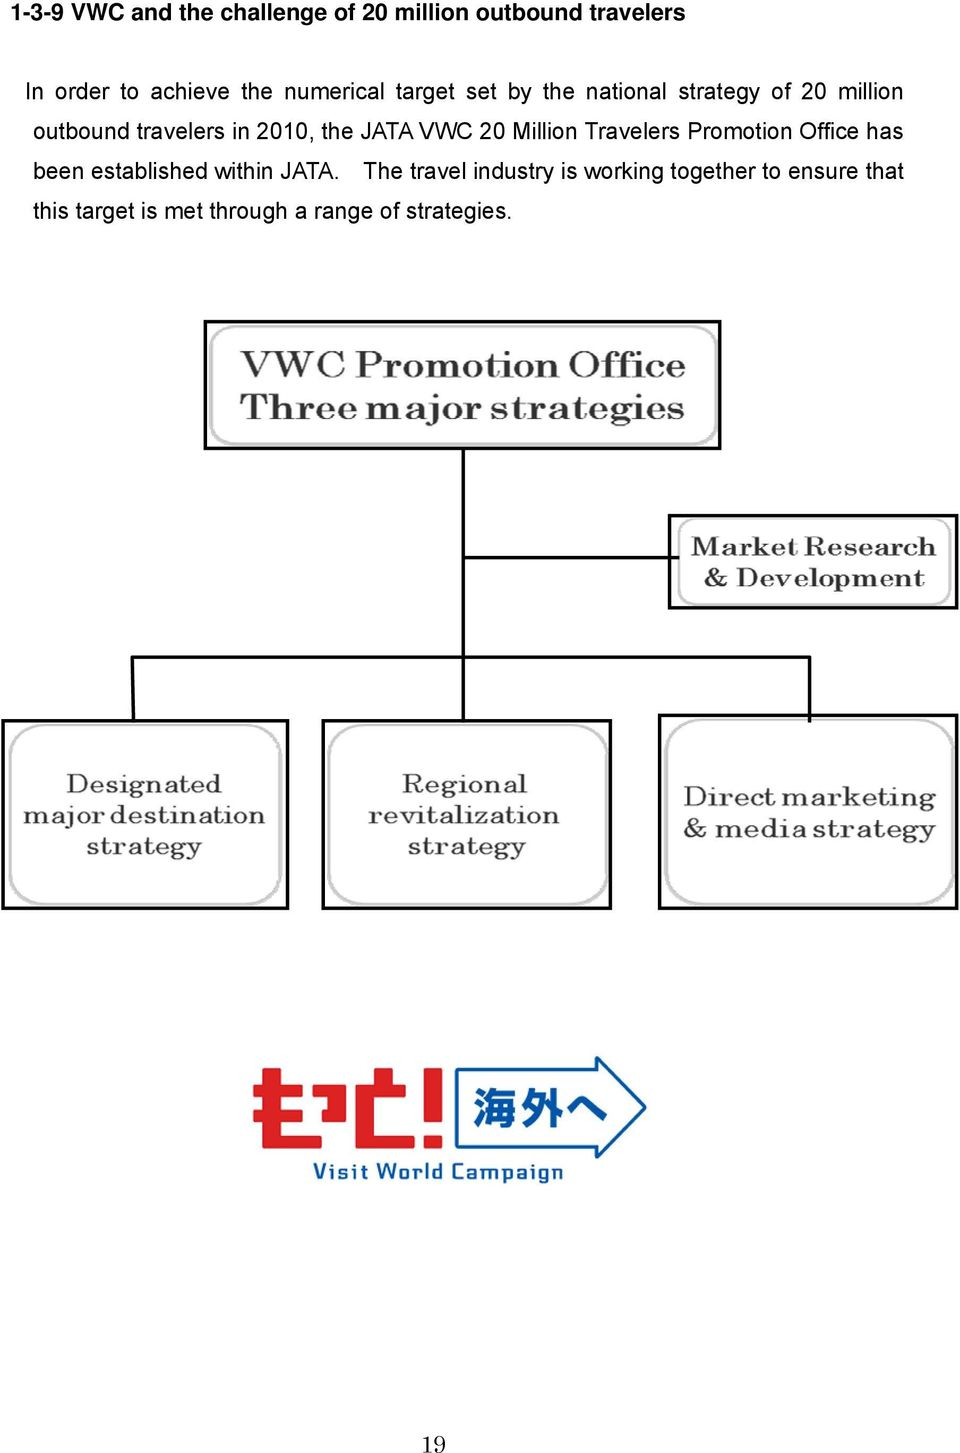 JATA VWC 20 Million Travelers Promotion Office has been established within JATA.